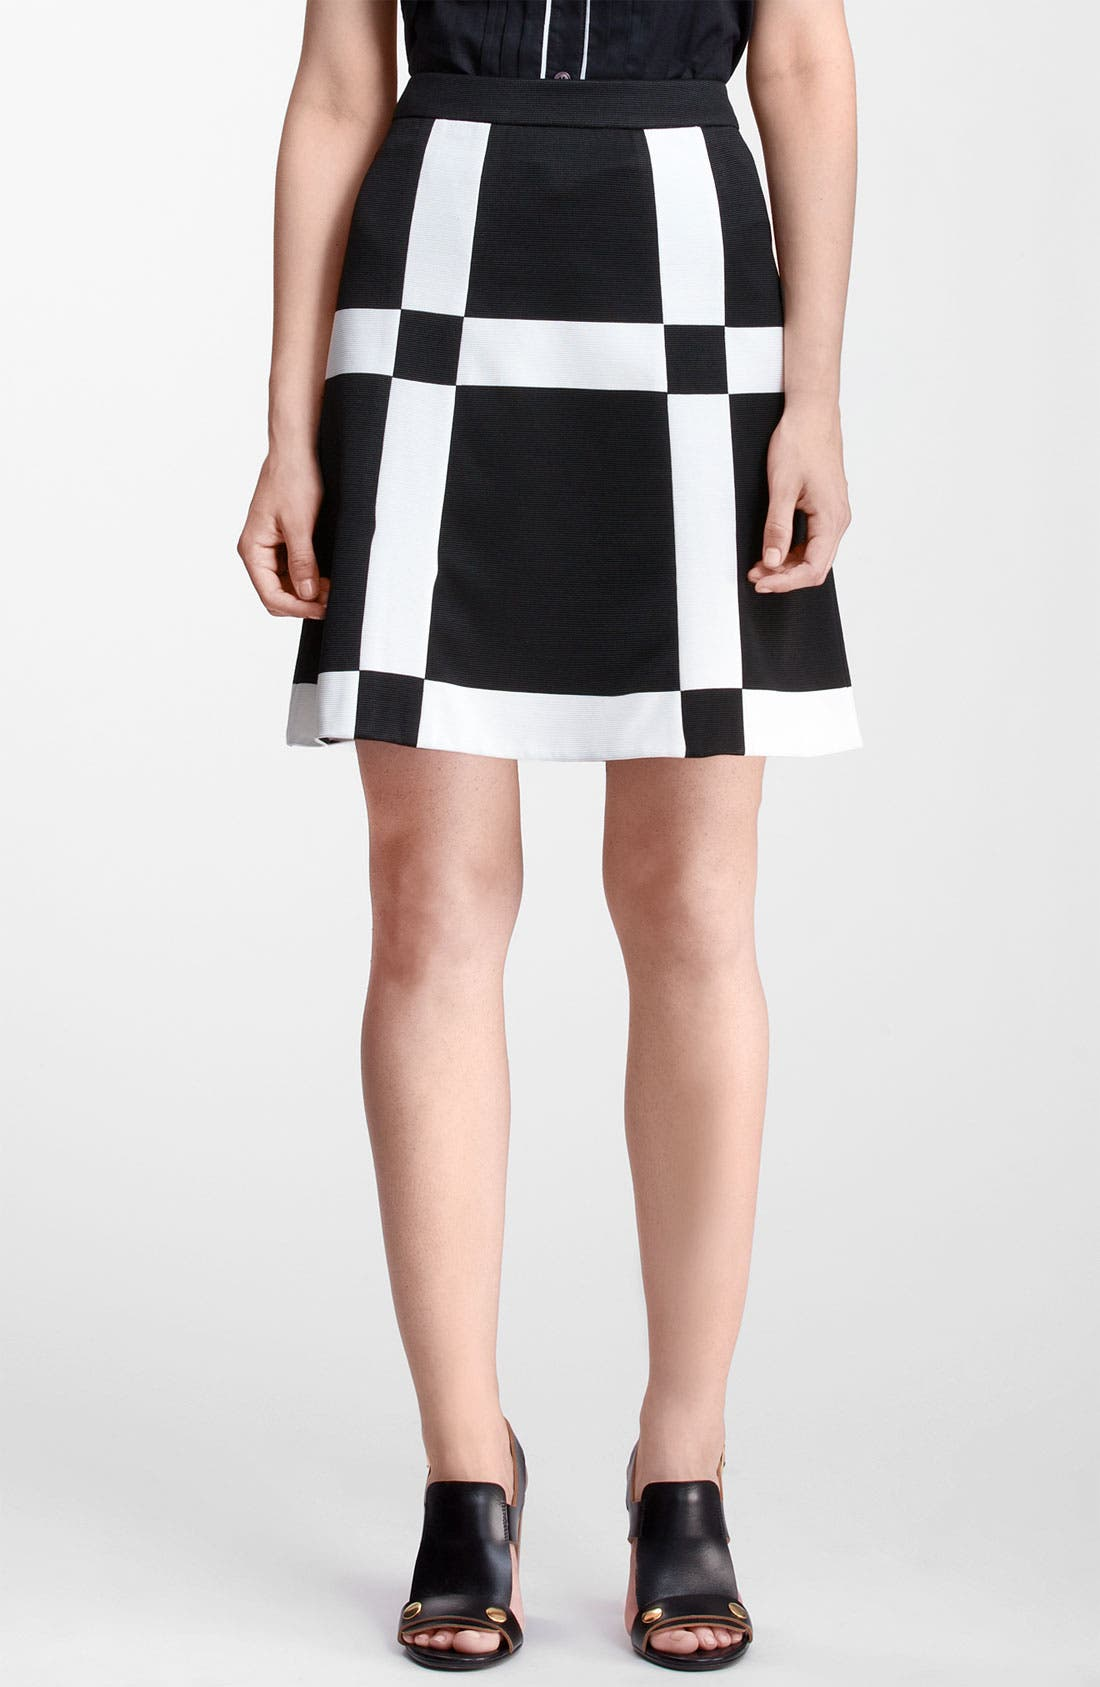 Alternate Image 1 Selected - Marni Edition Grid Print Knit Skirt